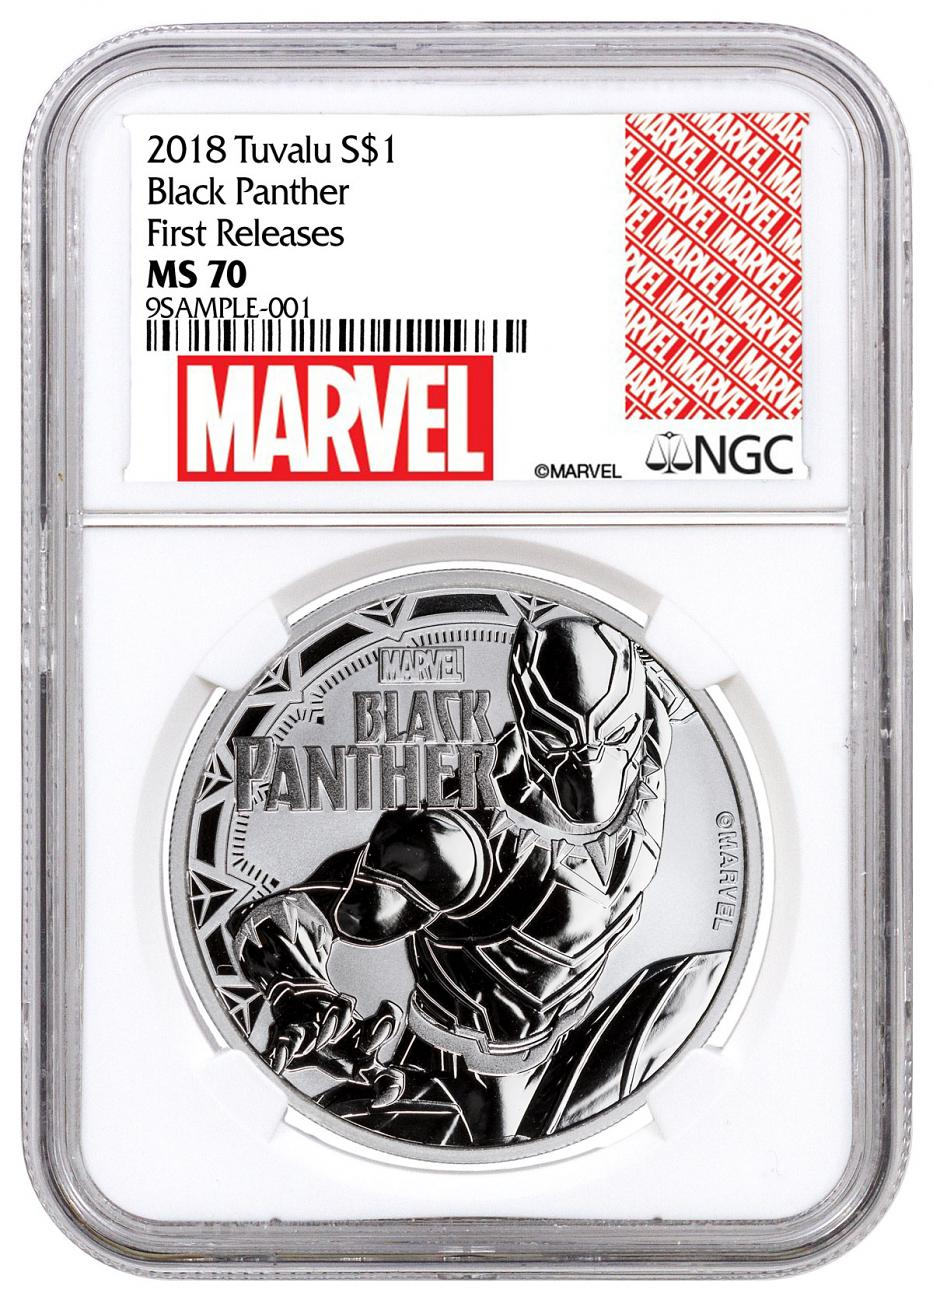 2018 Tuvalu Black Panther 1 oz Silver Marvel Series $1 Coin NGC MS70 FR Exclusive Marvel Label